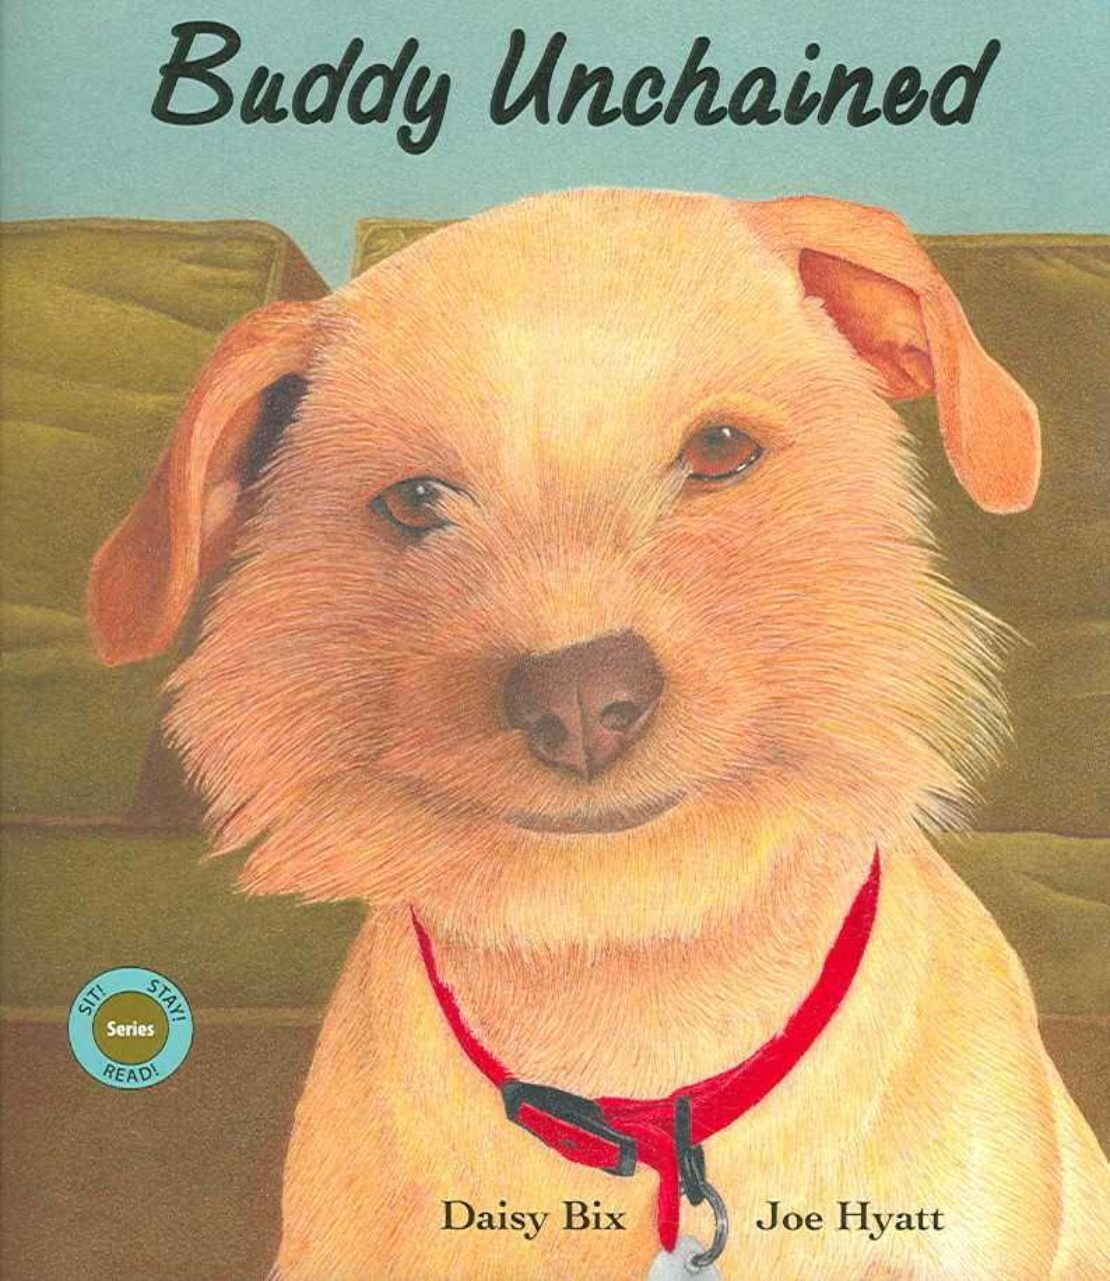 """Book titled """"Buddy Unchained,"""" with fuzz-faced dog wearing red collar seeming to smile outside the camera"""